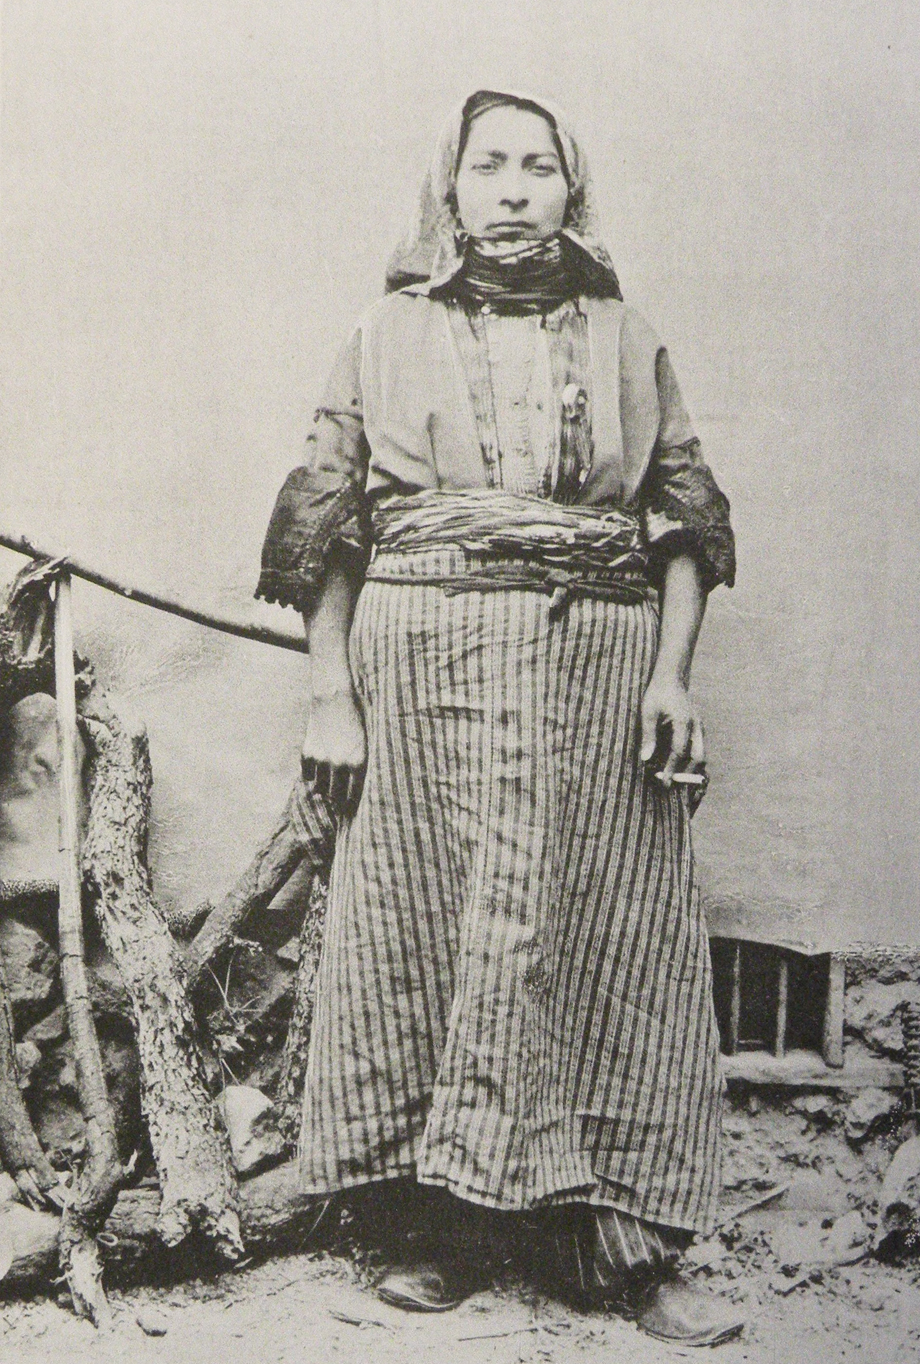 An Armenian woman from Zeytun (Source: Mark Sykes, Dar-ul-Islam, London, 1904)